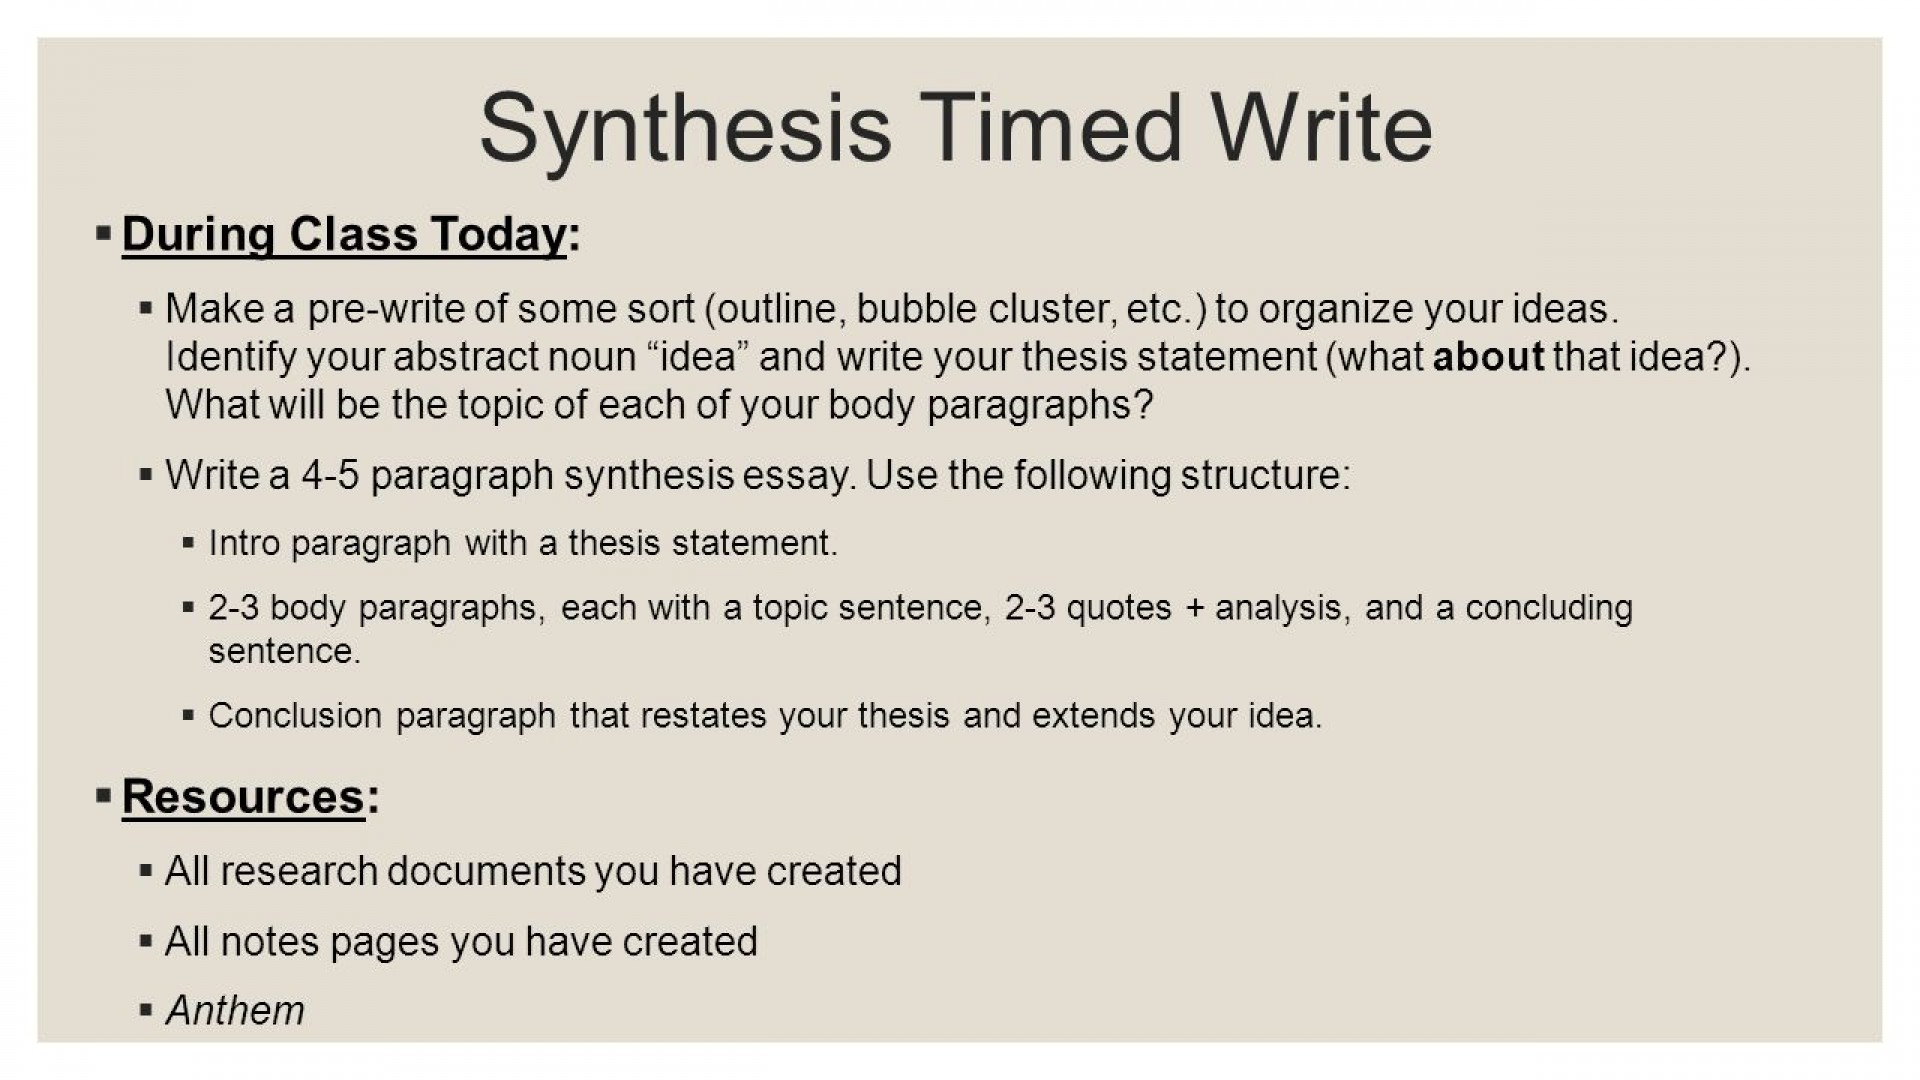 012 Synthesis Essay Outline Anthem Timed Write Day Research How To Sl Do I You For Ap English Lang Conclusion Prompt Thesis Good Introduction Stupendous Layout 1920